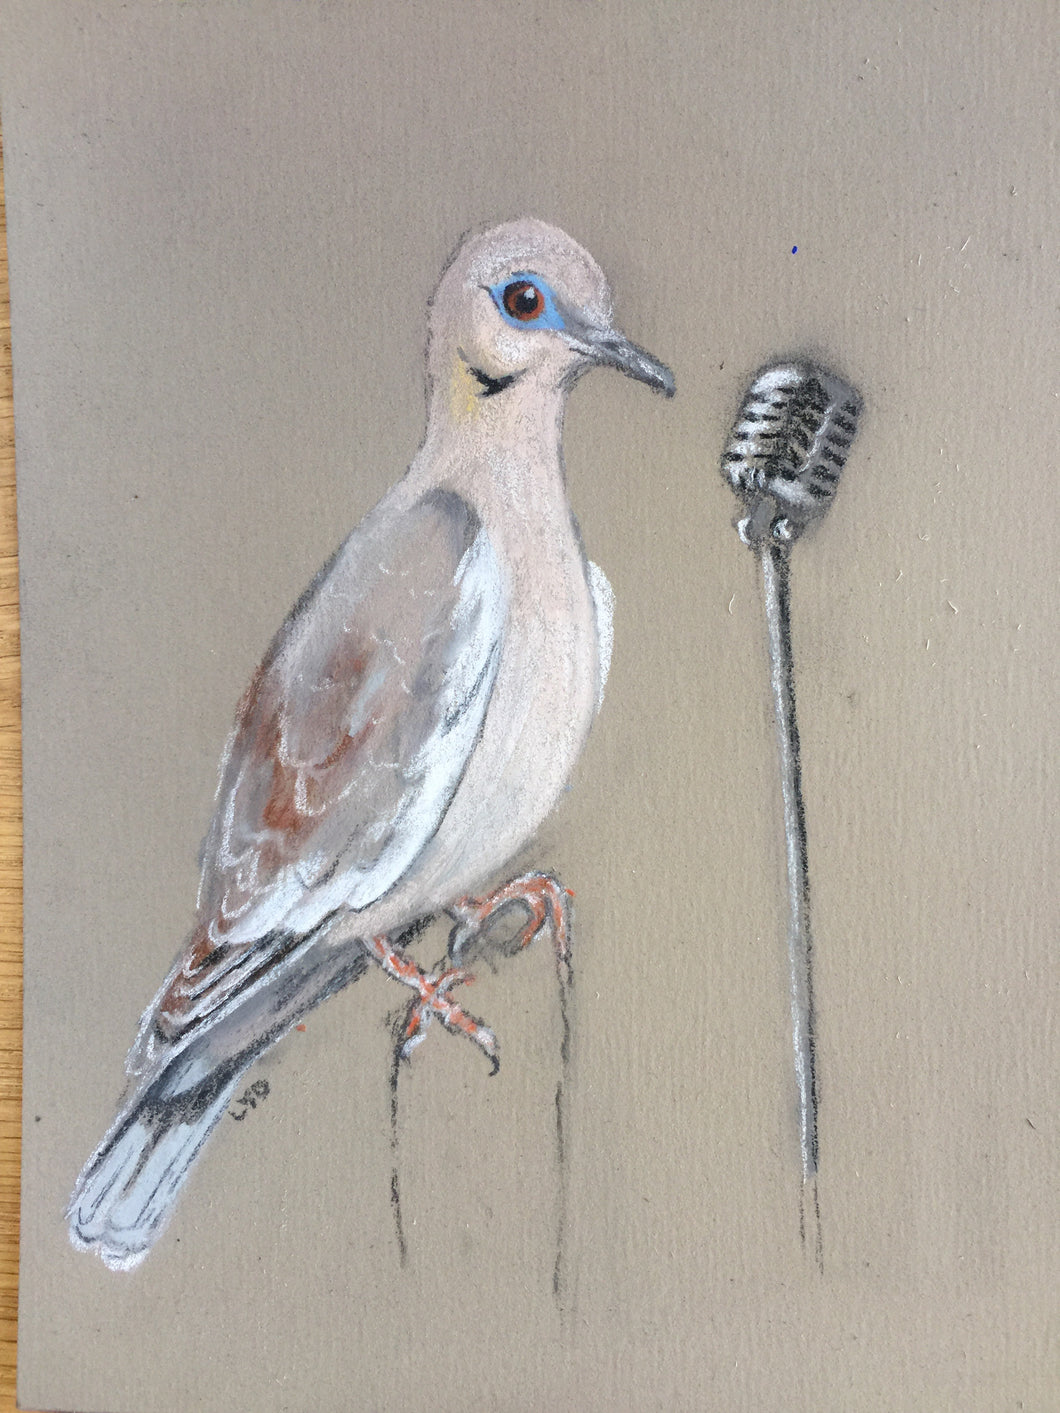 White-winged Dove Sings a Song